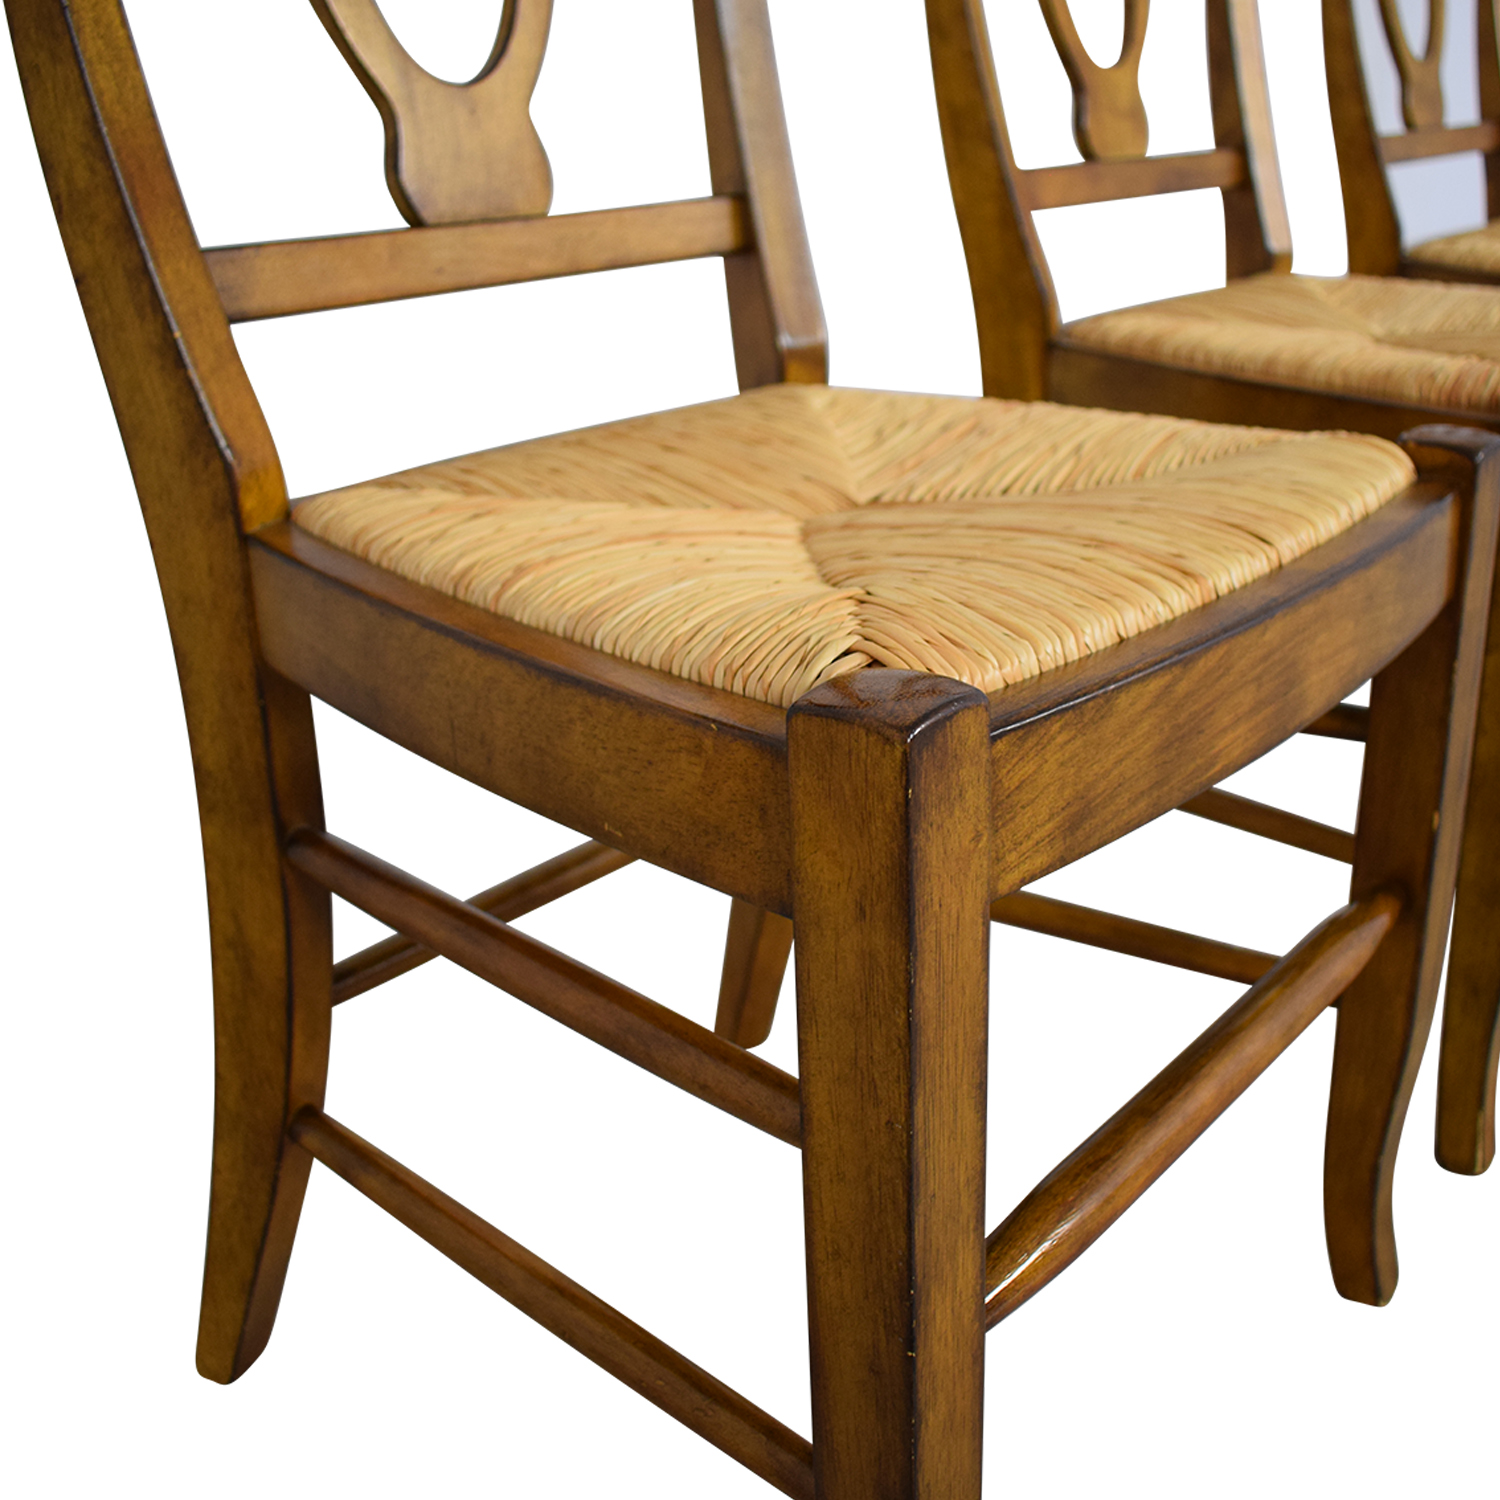 Pottery Barn Pottery Barn Dining Chairs discount